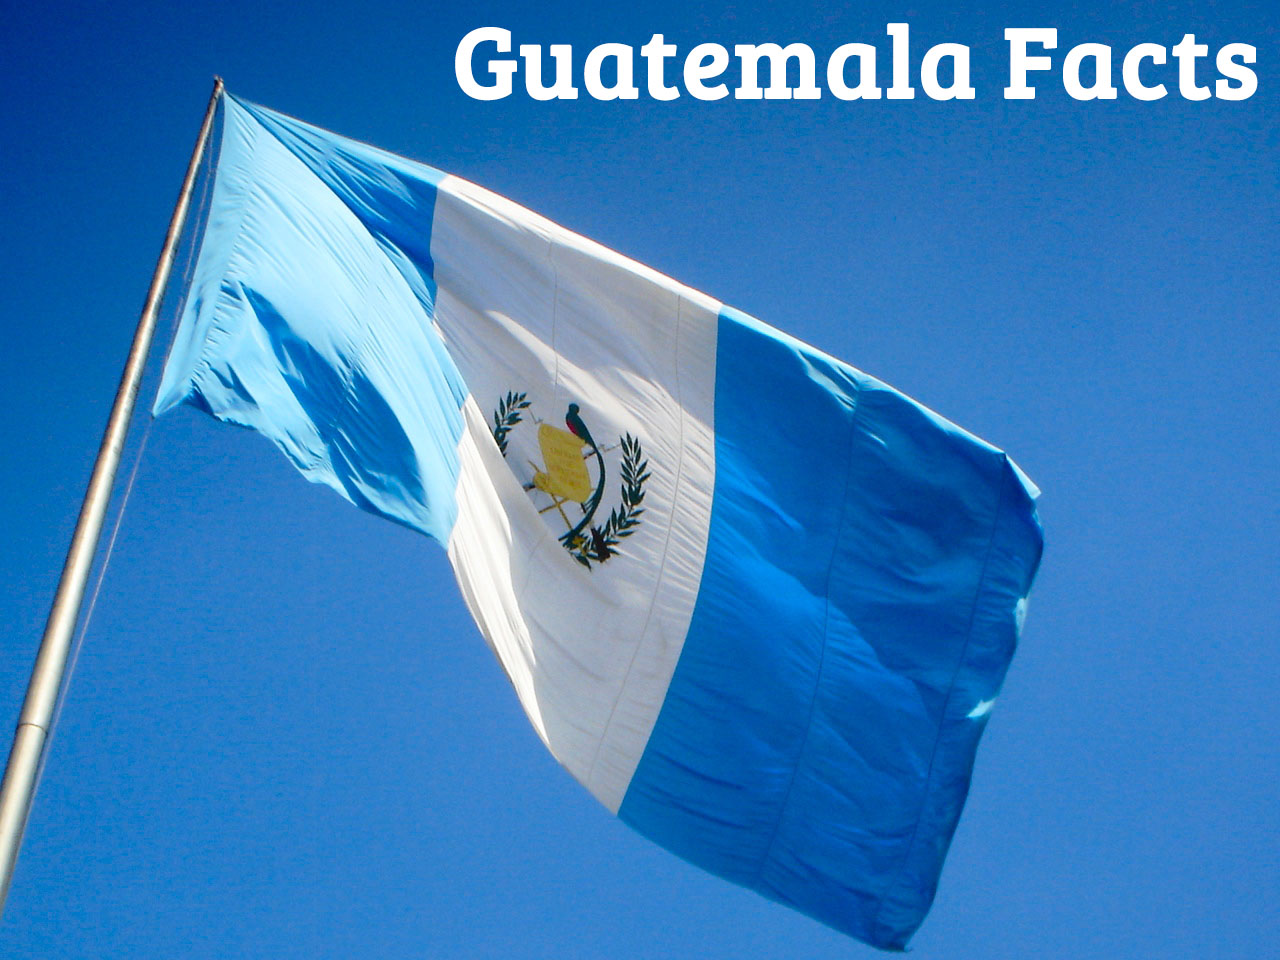 Guatemala Facts